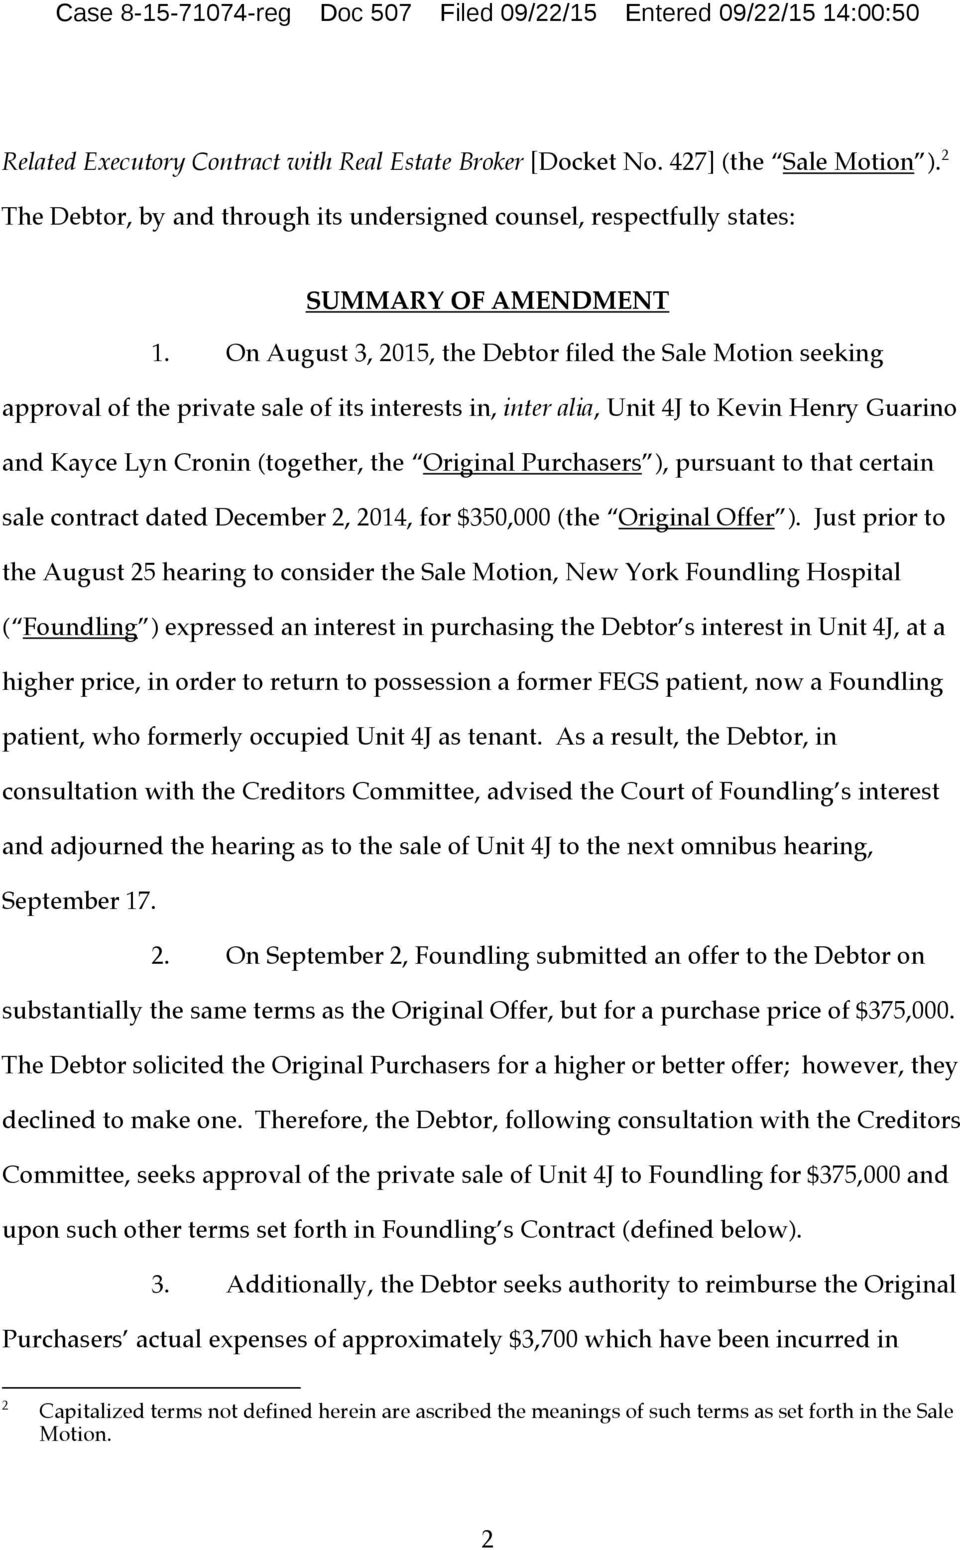 On August 3, 2015, the Debtor filed the Sale Motion seeking approval of the private sale of its interests in, inter alia, Unit 4J to Kevin Henry Guarino and Kayce Lyn Cronin (together, the Original